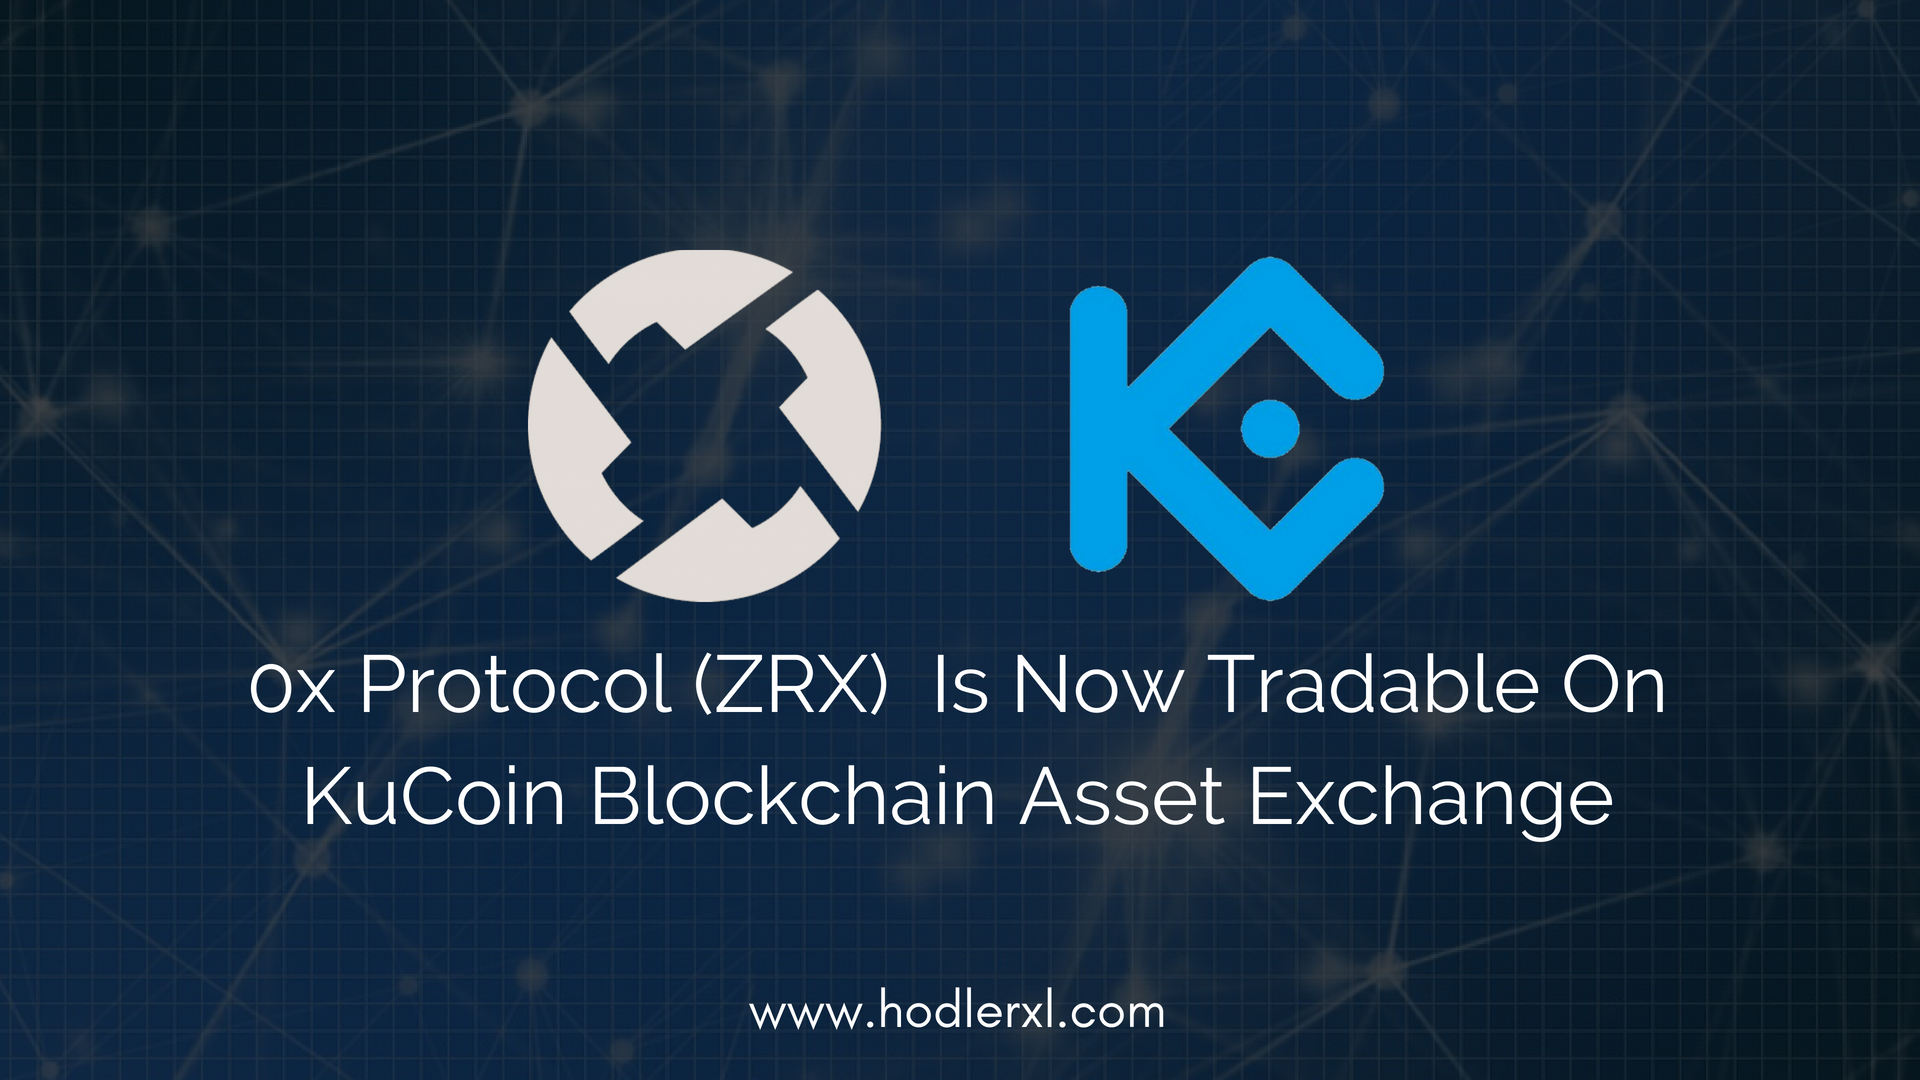 0x Protocol (ZRX) Is Now Tradable On KuCoin Blockchain Asset Exchange